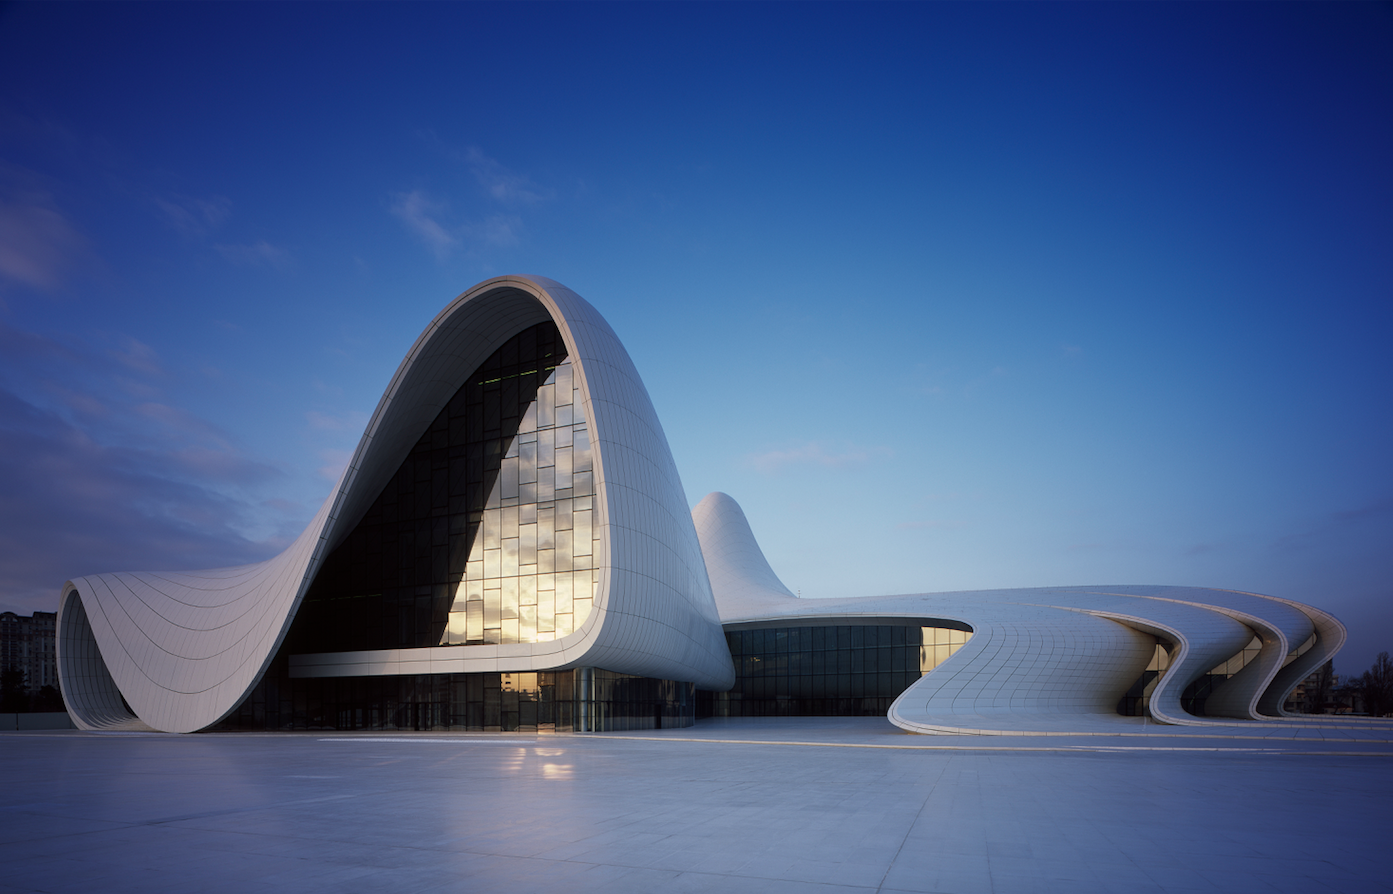 Heydar Aliyev Center (photo by Helene Binet)